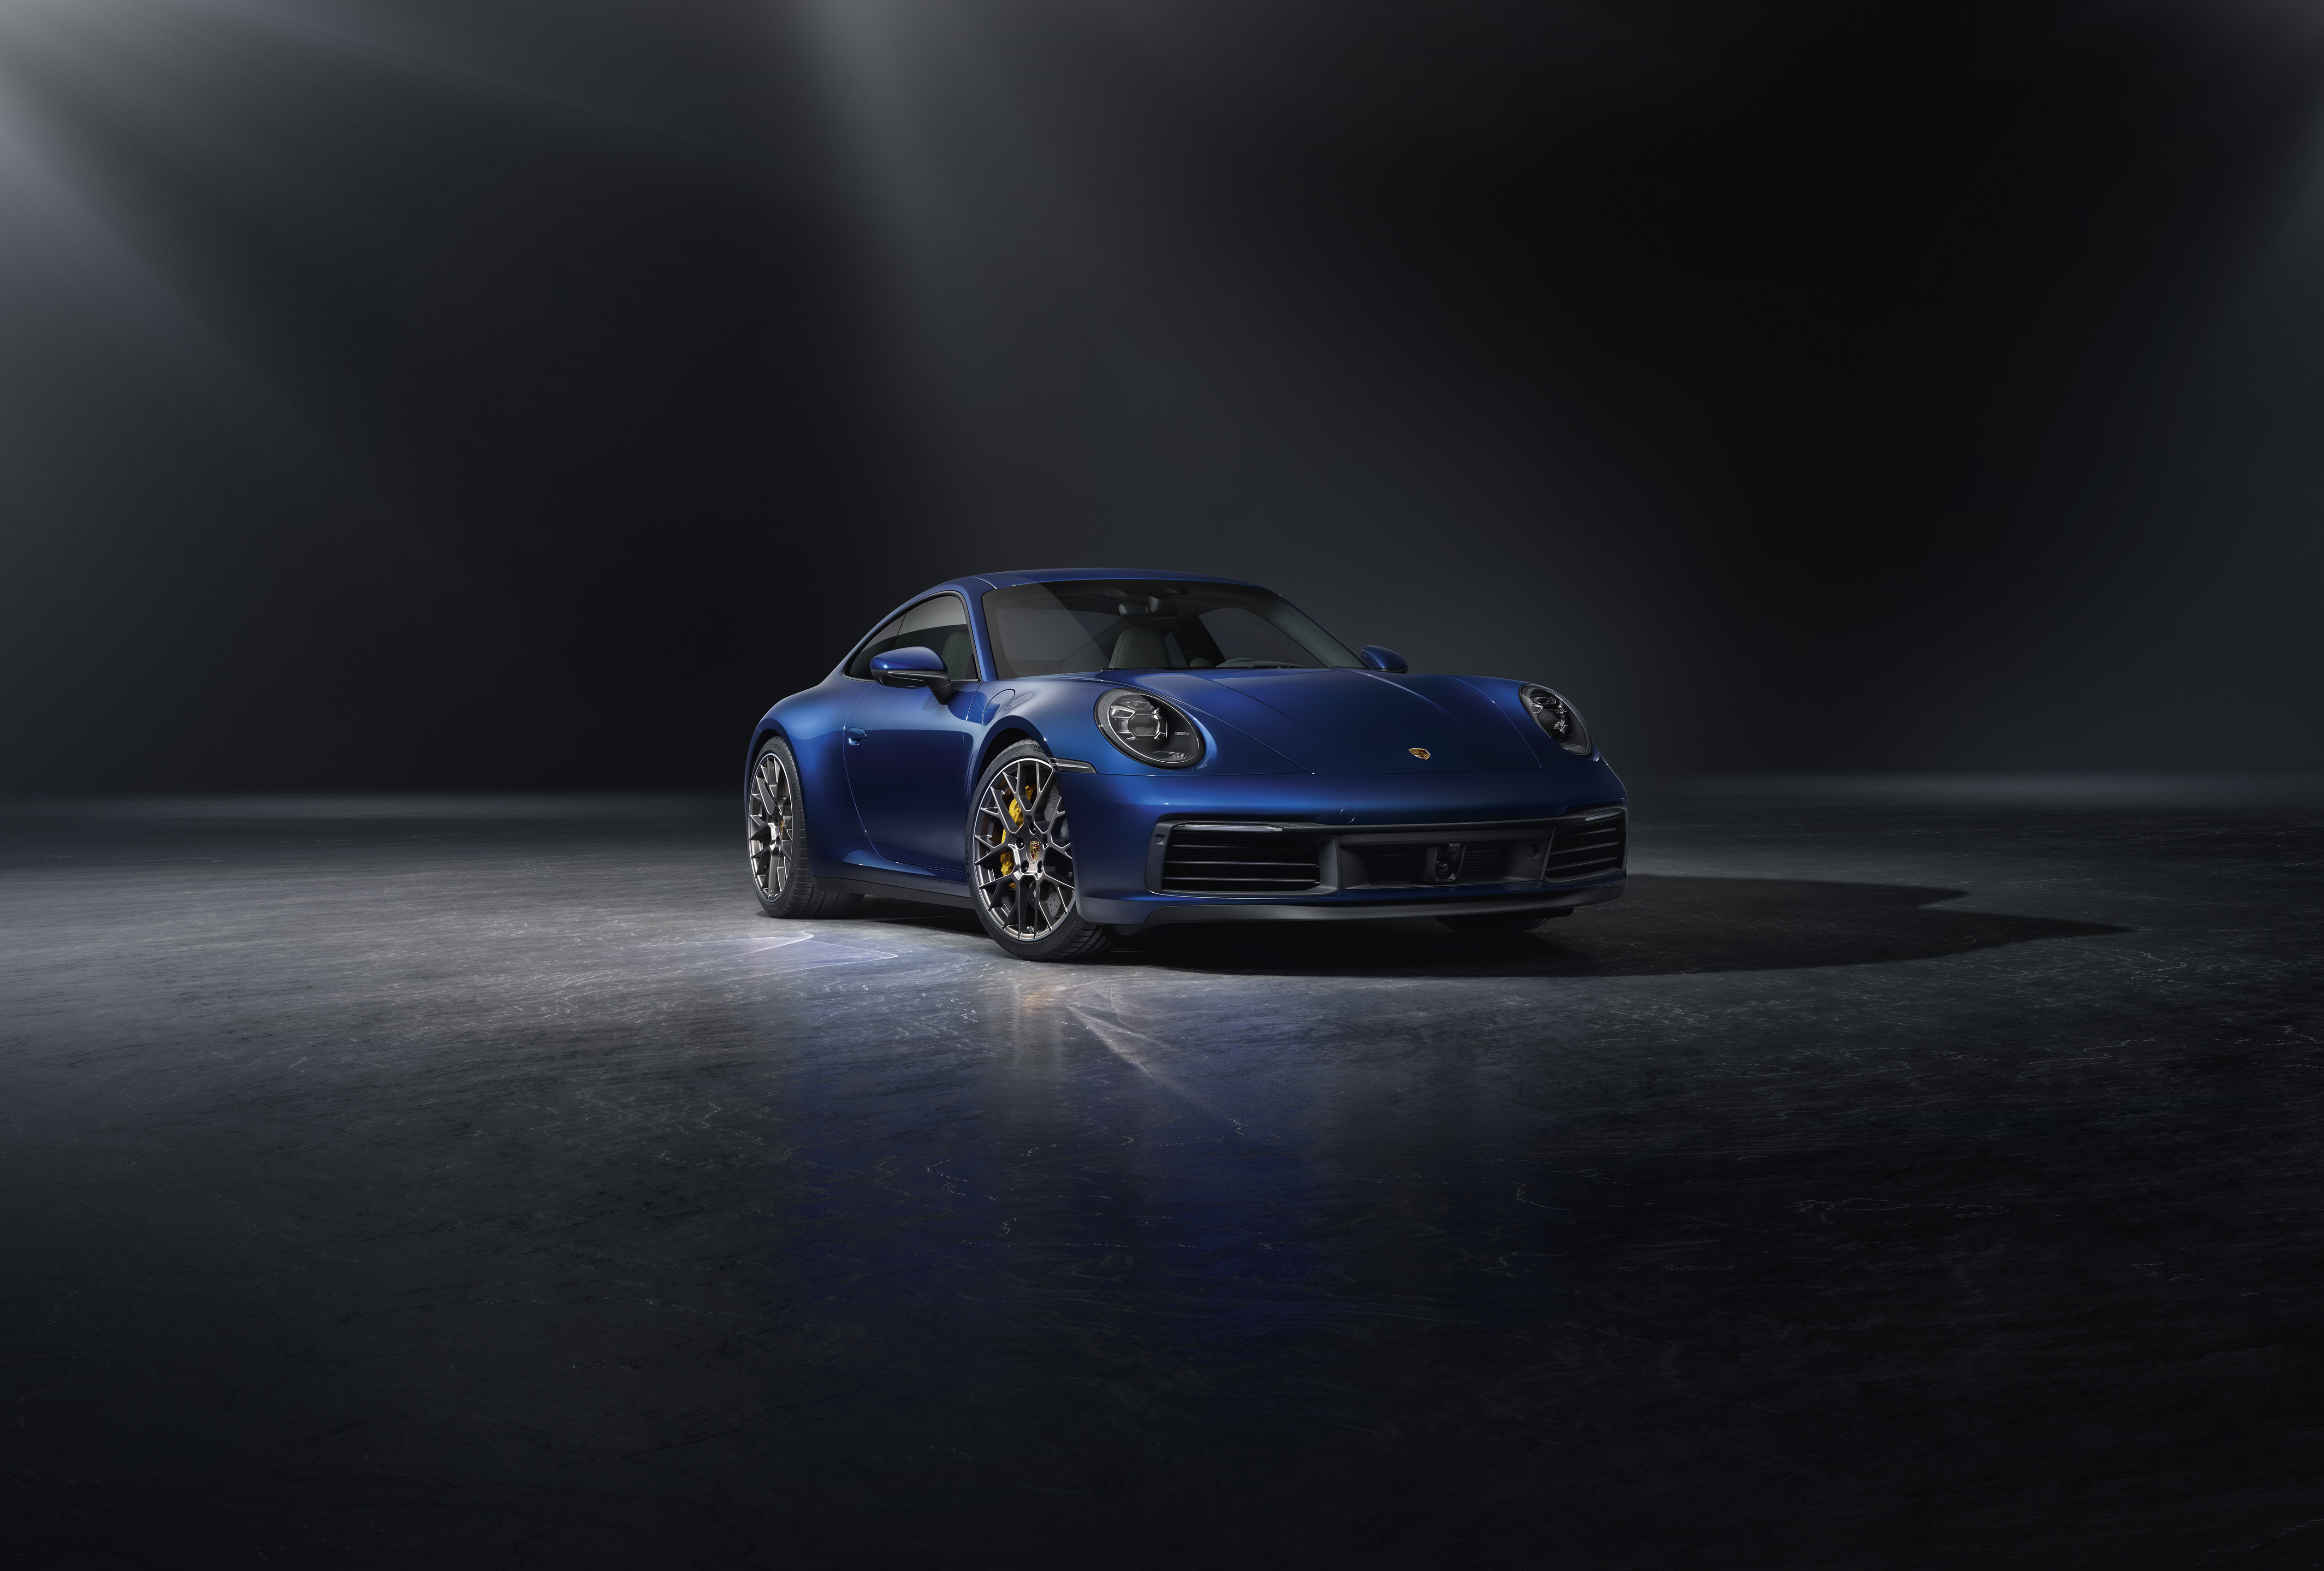 The New 2020 Porsche 911 Carrera S And 4s More Powerful More Dynamic Unmistakably A 911 Dr Ing H C F Porsche Ag Press Database Porsche 911 carrera 4s 2019 5k